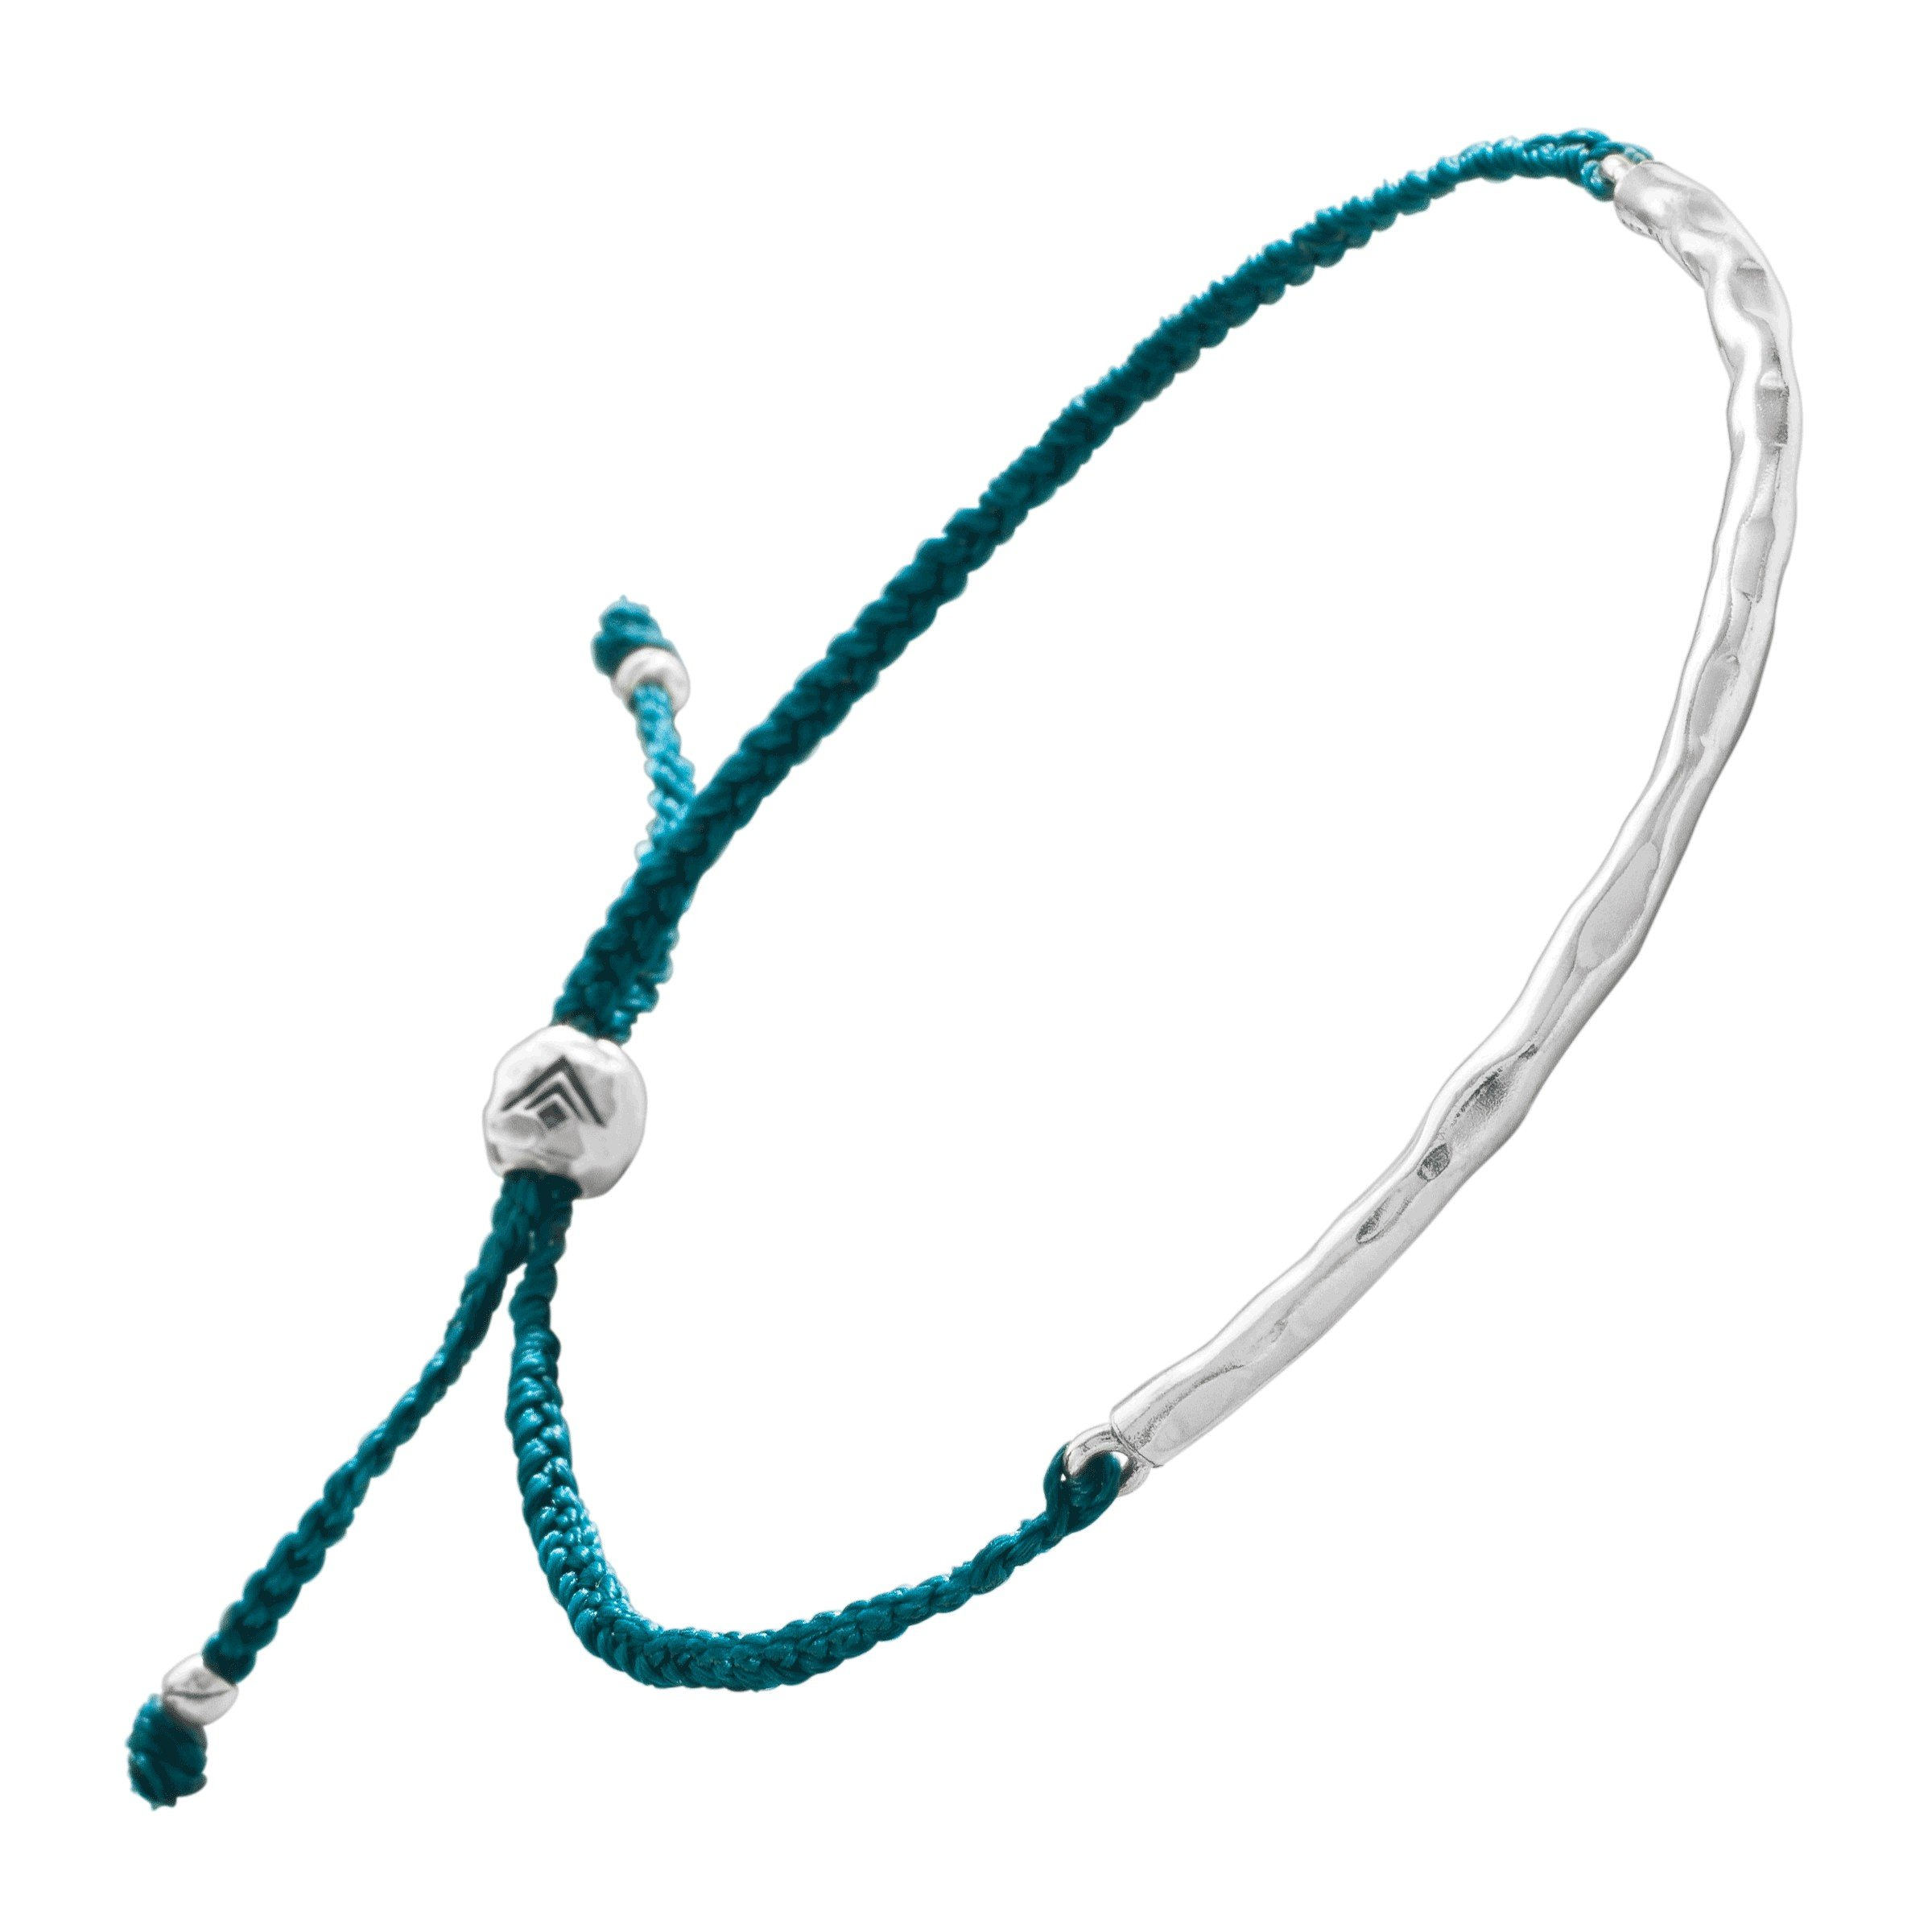 Silpada 'Bright and Braided' Teal Macramé Adjustable Bangle Bracelet in Sterling Silver, 8.75''